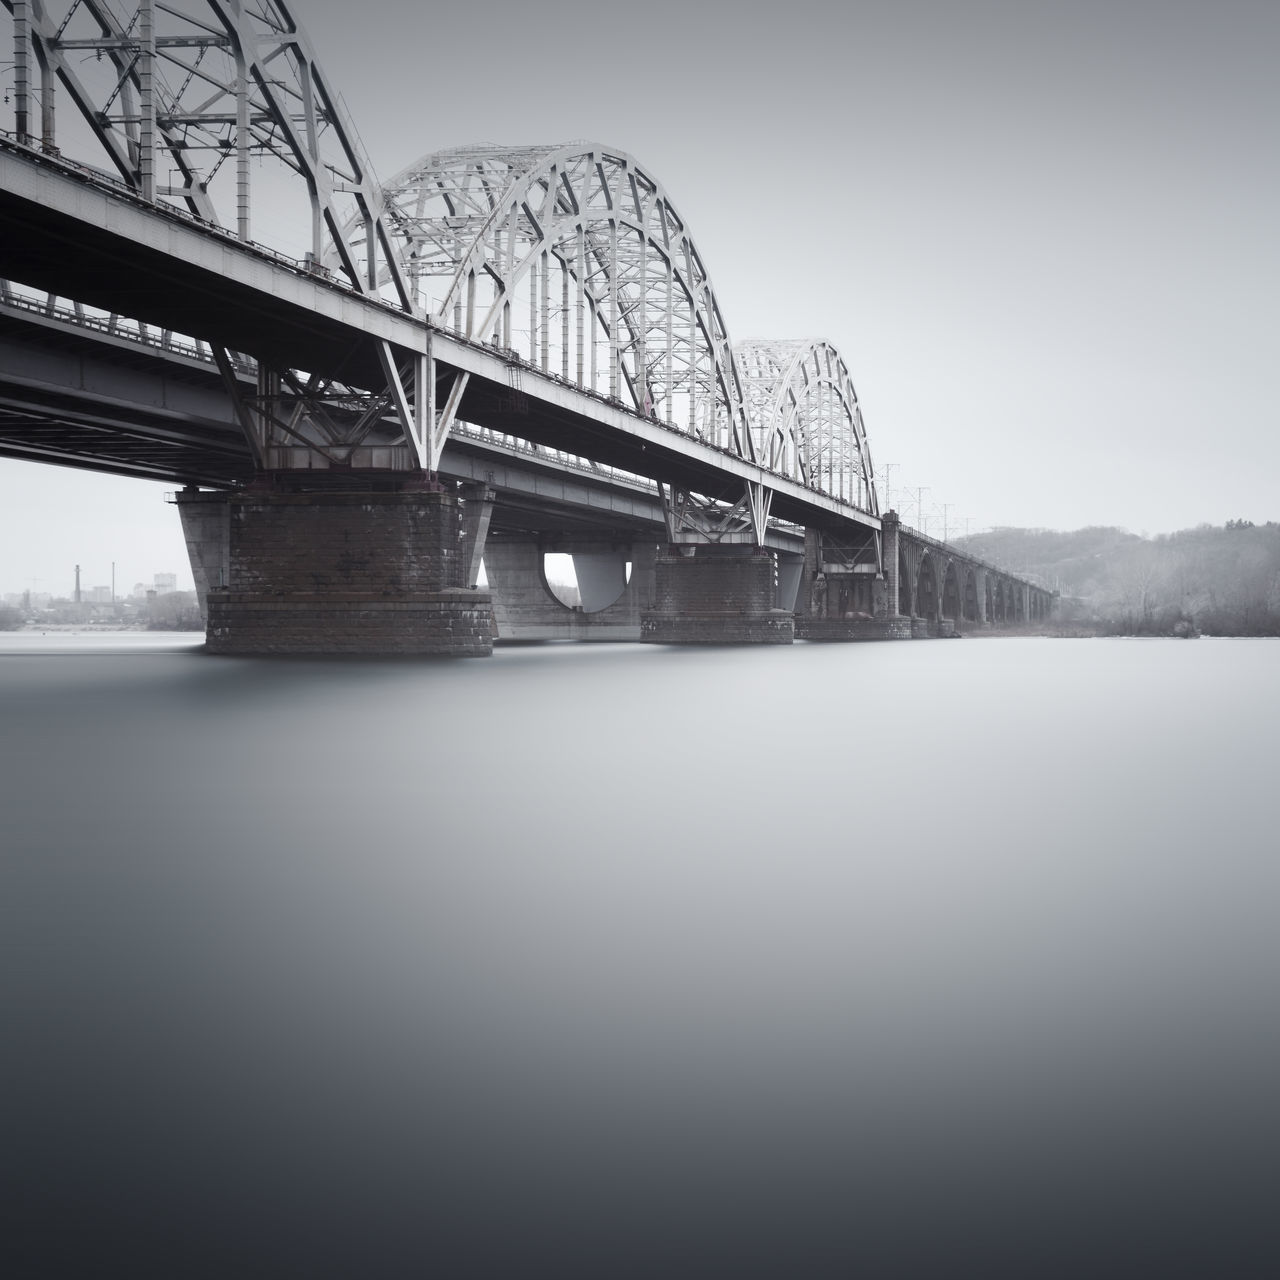 low angle view of bridge over river against clear sky Architecture Bridge - Man Made Structure Built Structure Clear Sky Connection Day Engineering Kyiv Low Angle View Muted Colors Nature New Darnytskyi Bridge No People Outdoors Philipp Dase Railroad Bridge River Sky Transportation Ukraine Water Winter Wintertime